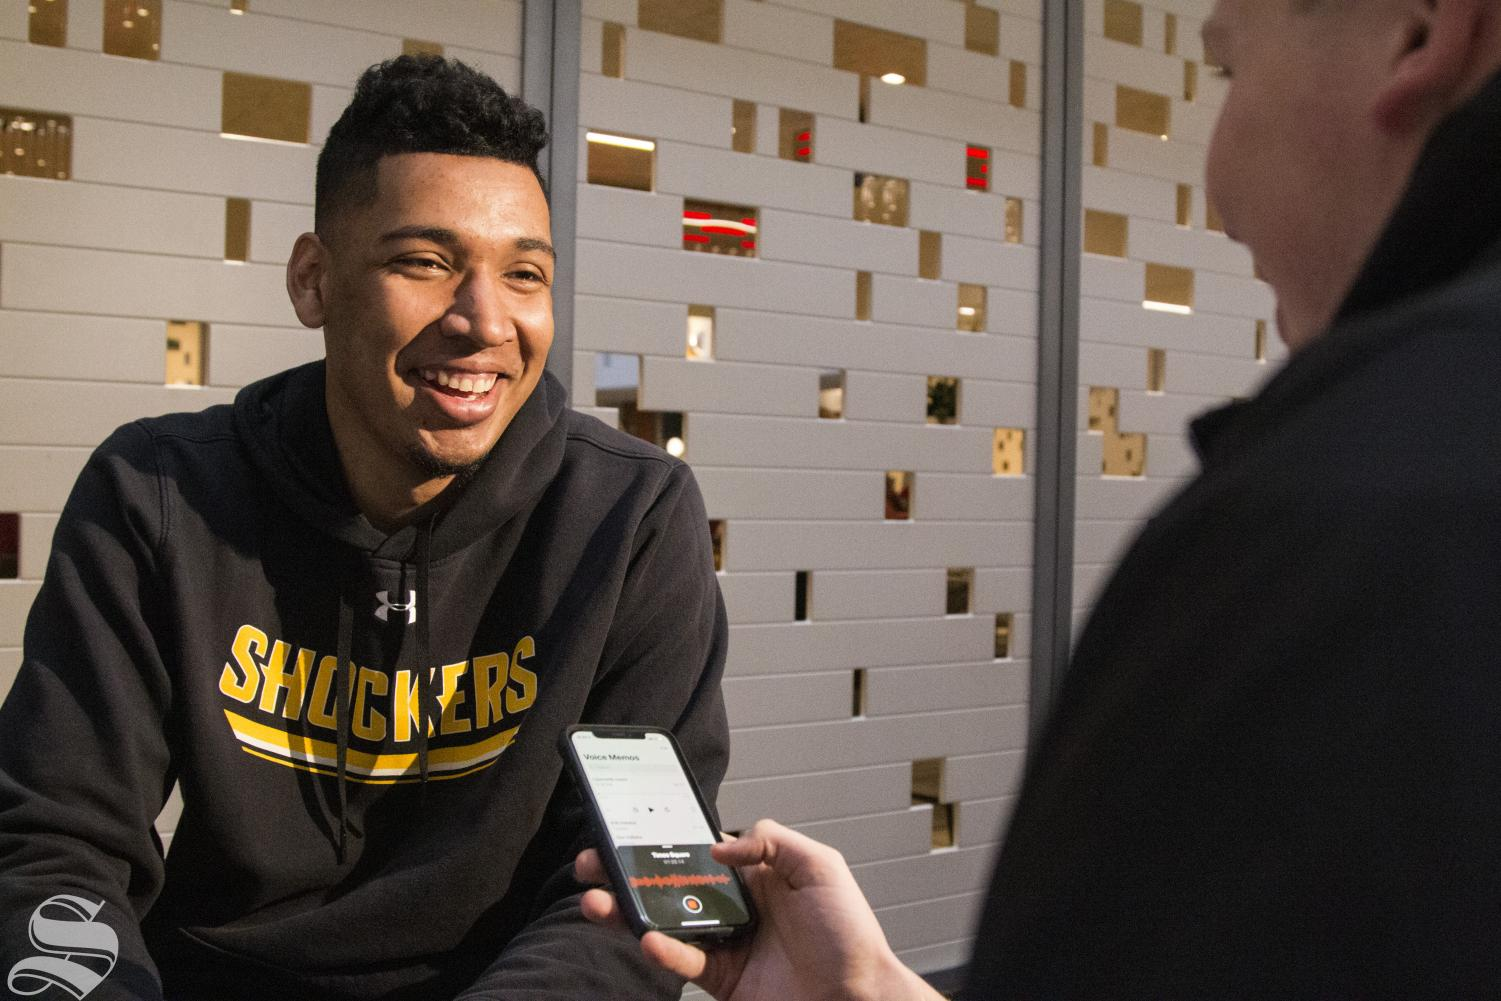 Wichita State's Jaime Echenique answers questions during an interview with The Sunflower at the Marriott Marquis in New York on April 1, 2019.